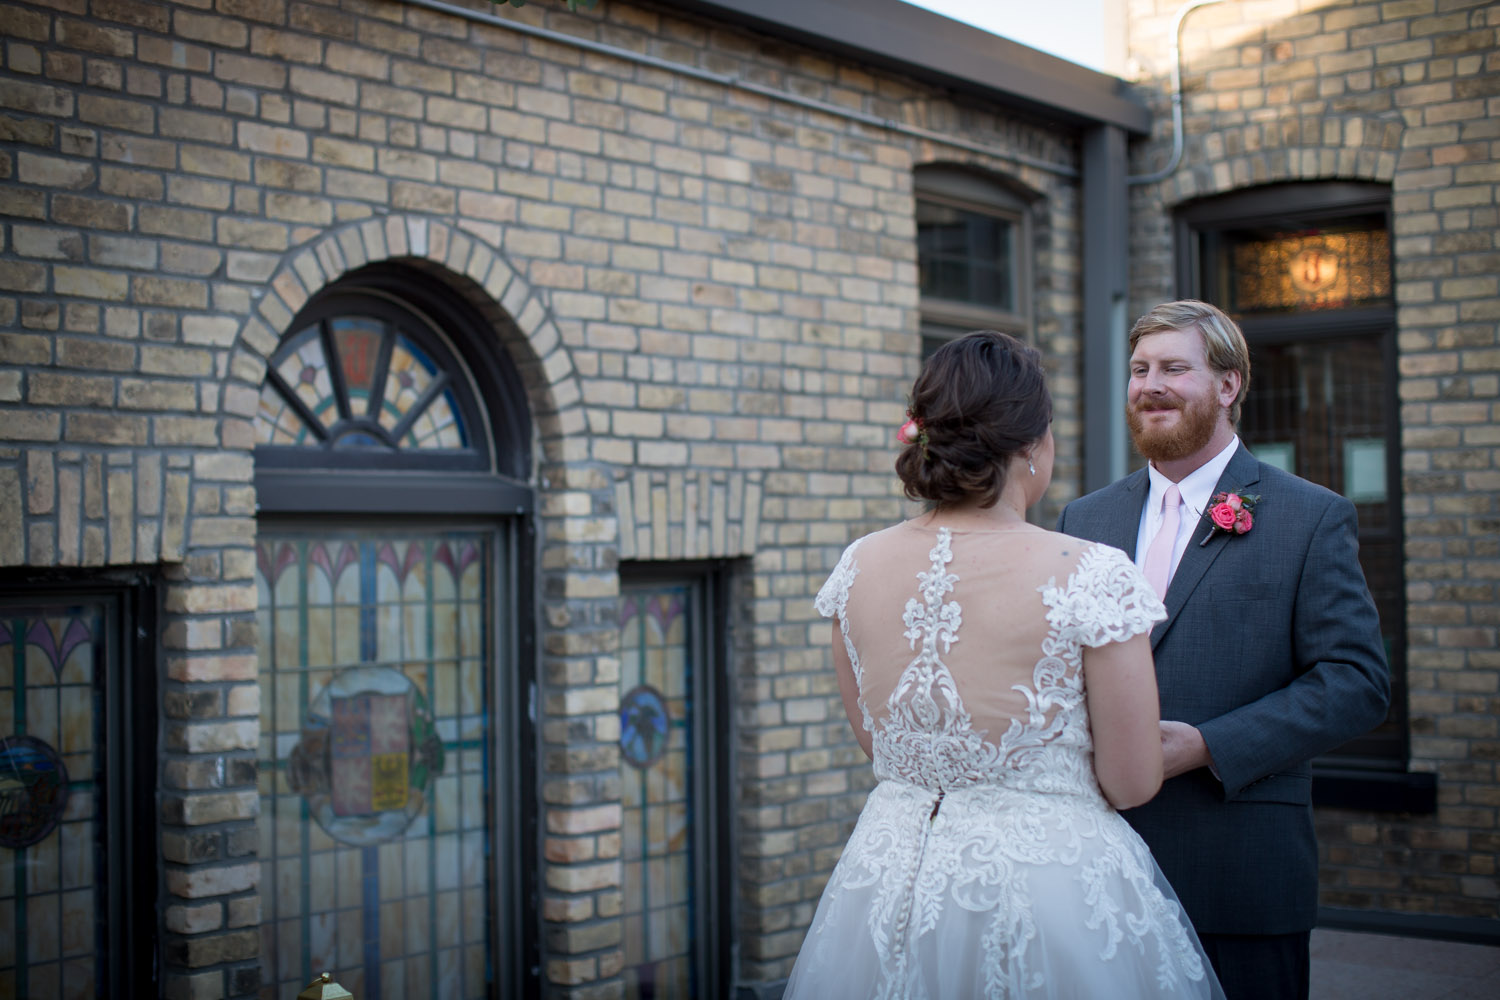 27-hotel-broz-new-prague-mn-minnesota-wedding-venue-photographer-styled-shoot-rooftop-ceremony-vows-mahonen-photography.jpg